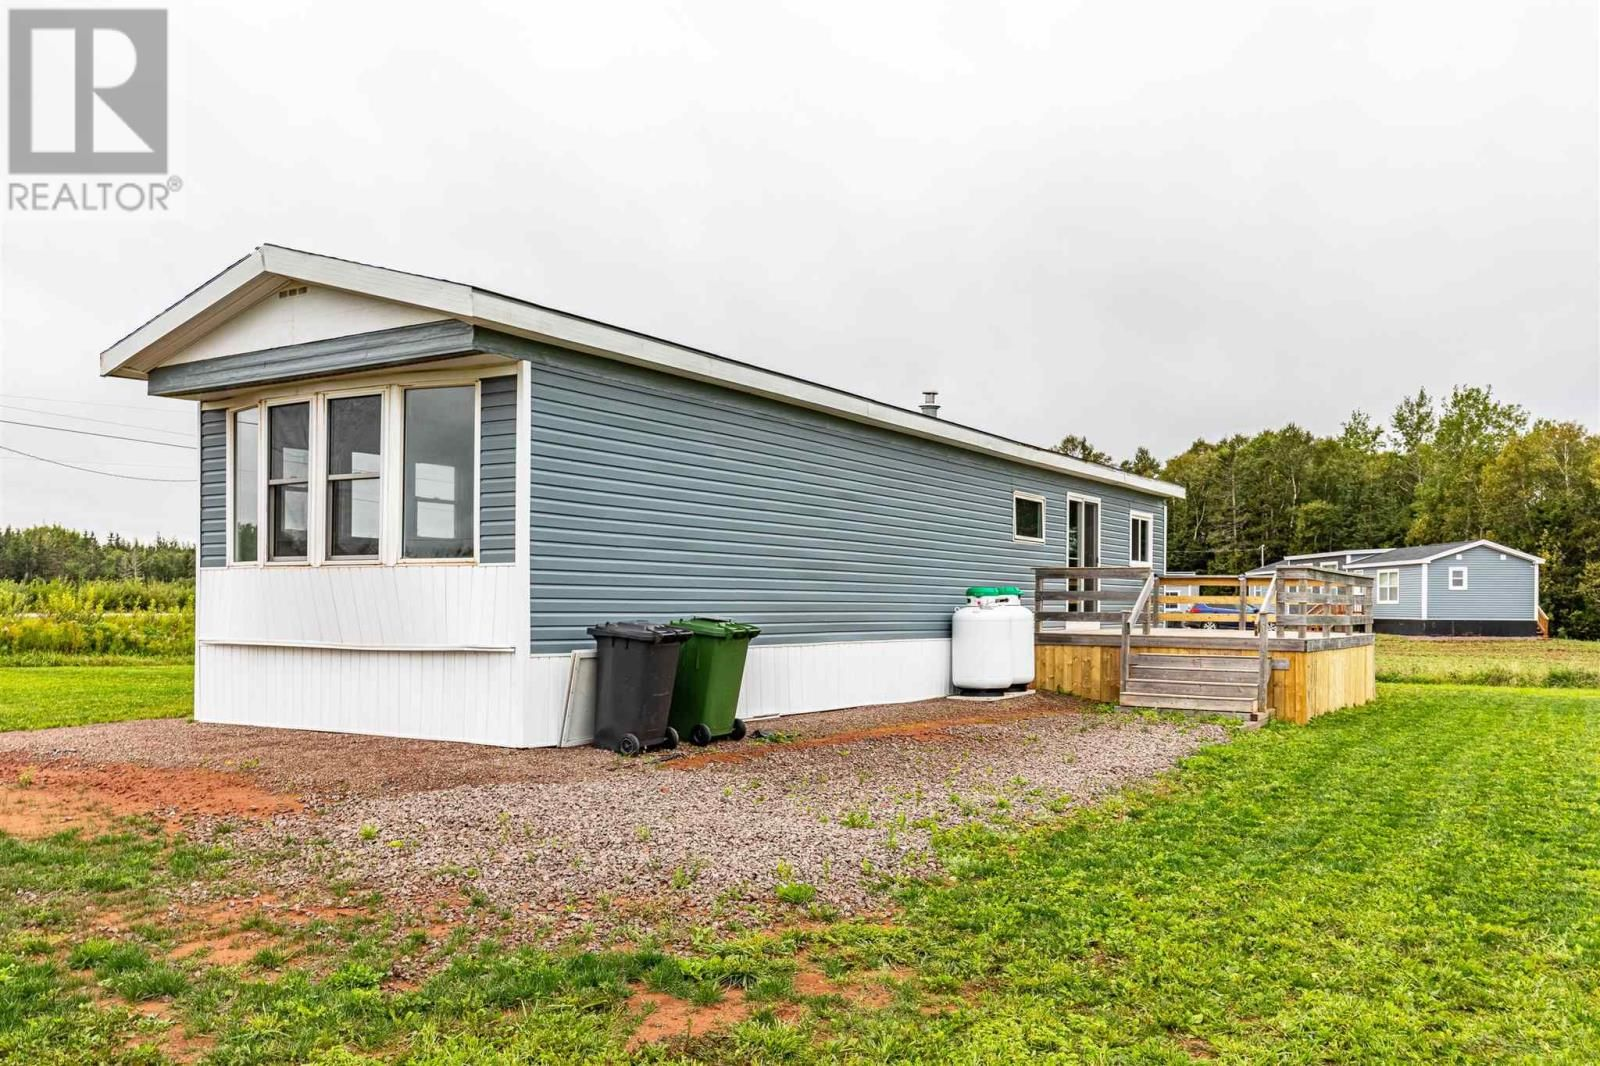 Photo 24: Photos: 4384 Route 11 in St. Nicholas: House for sale : MLS®# 202123302